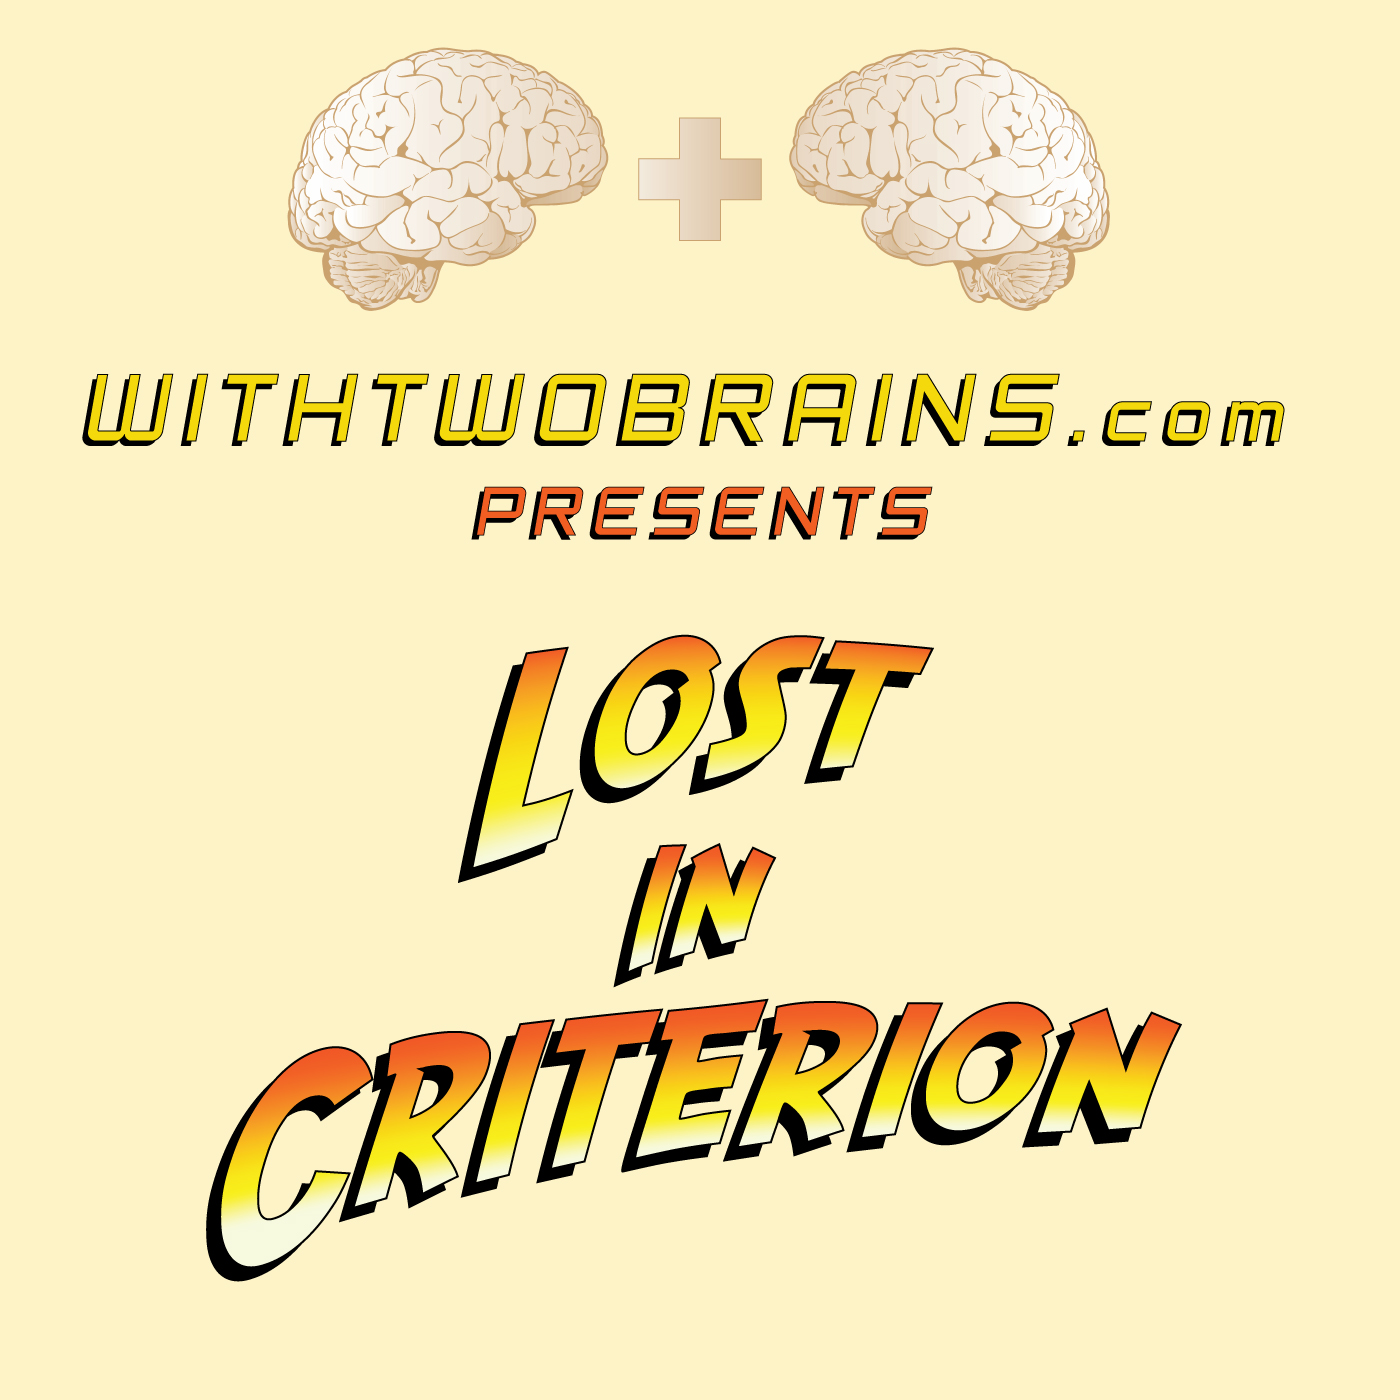 Lost in Criterion - With Two Brains